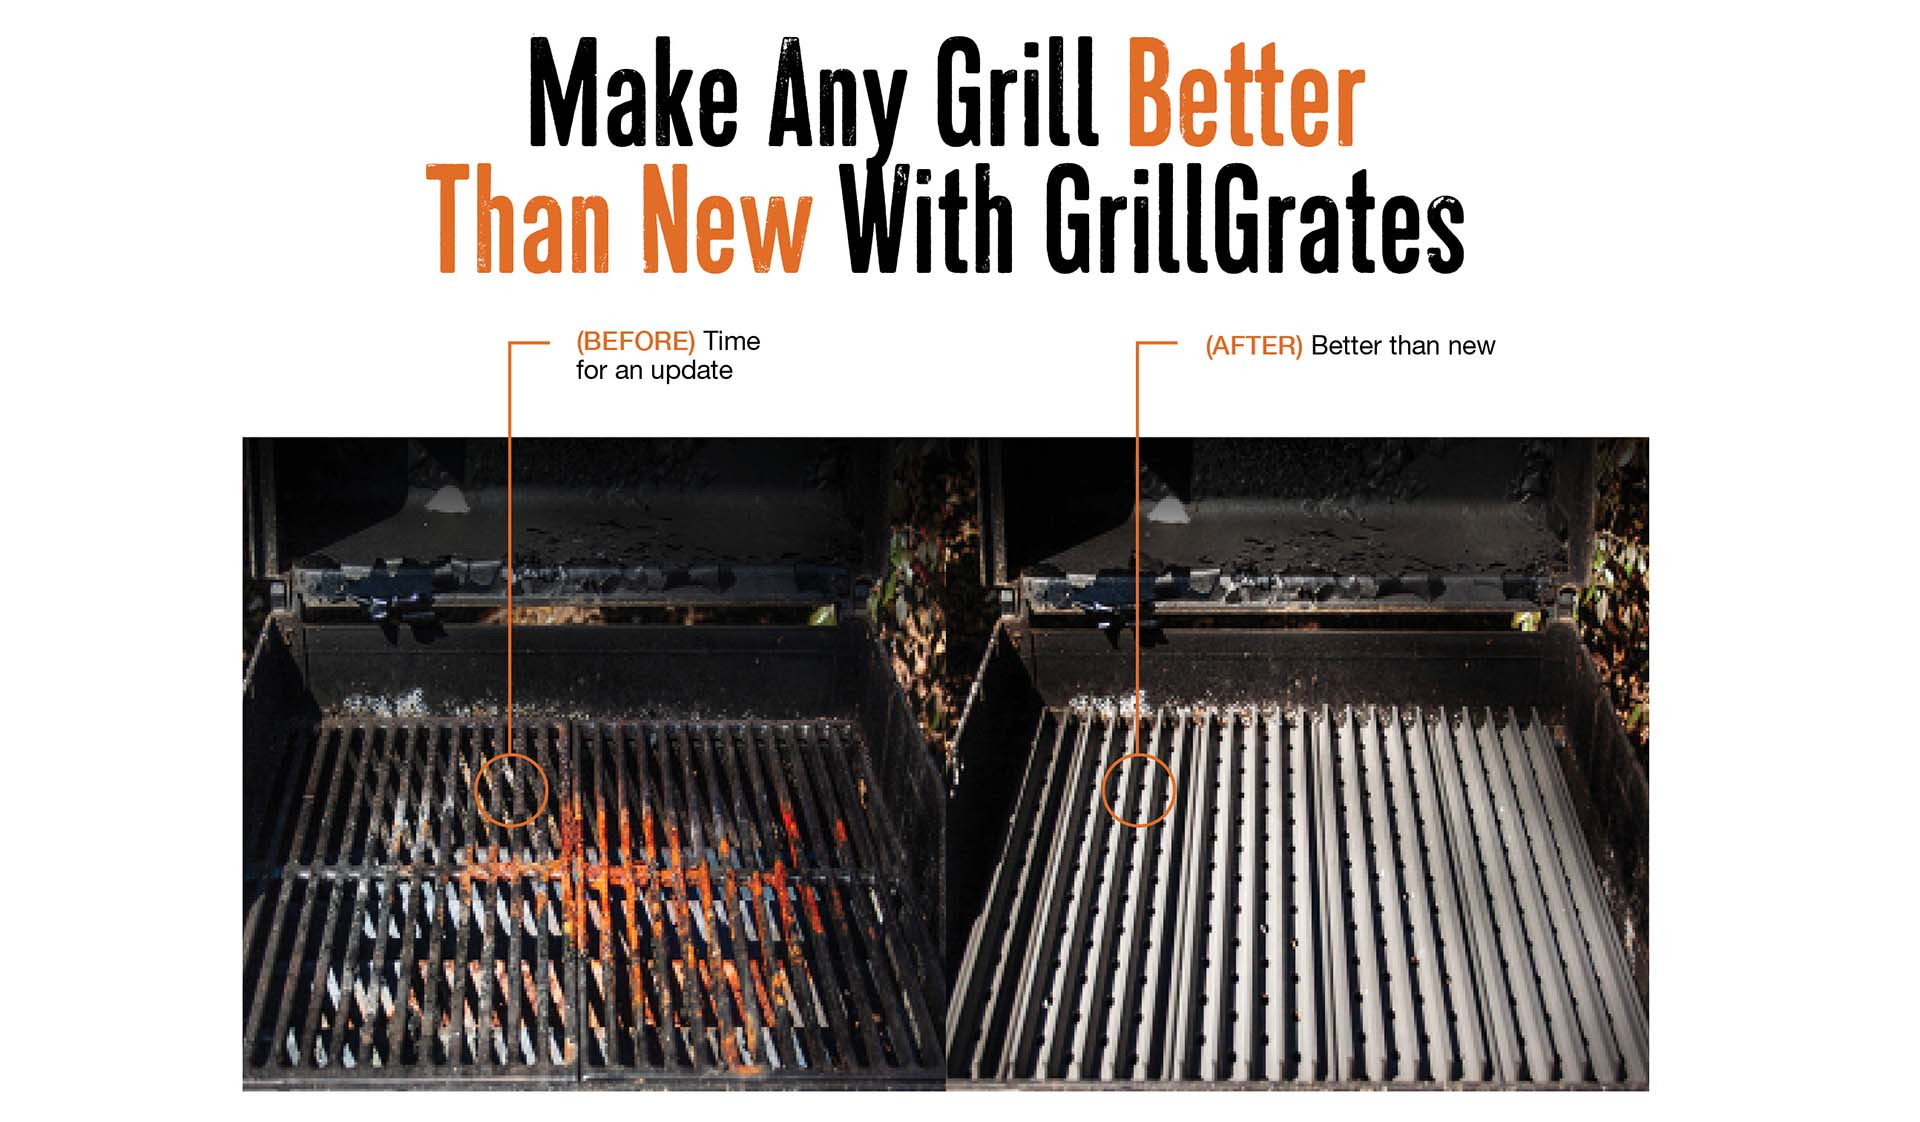 Make Any Grill Better